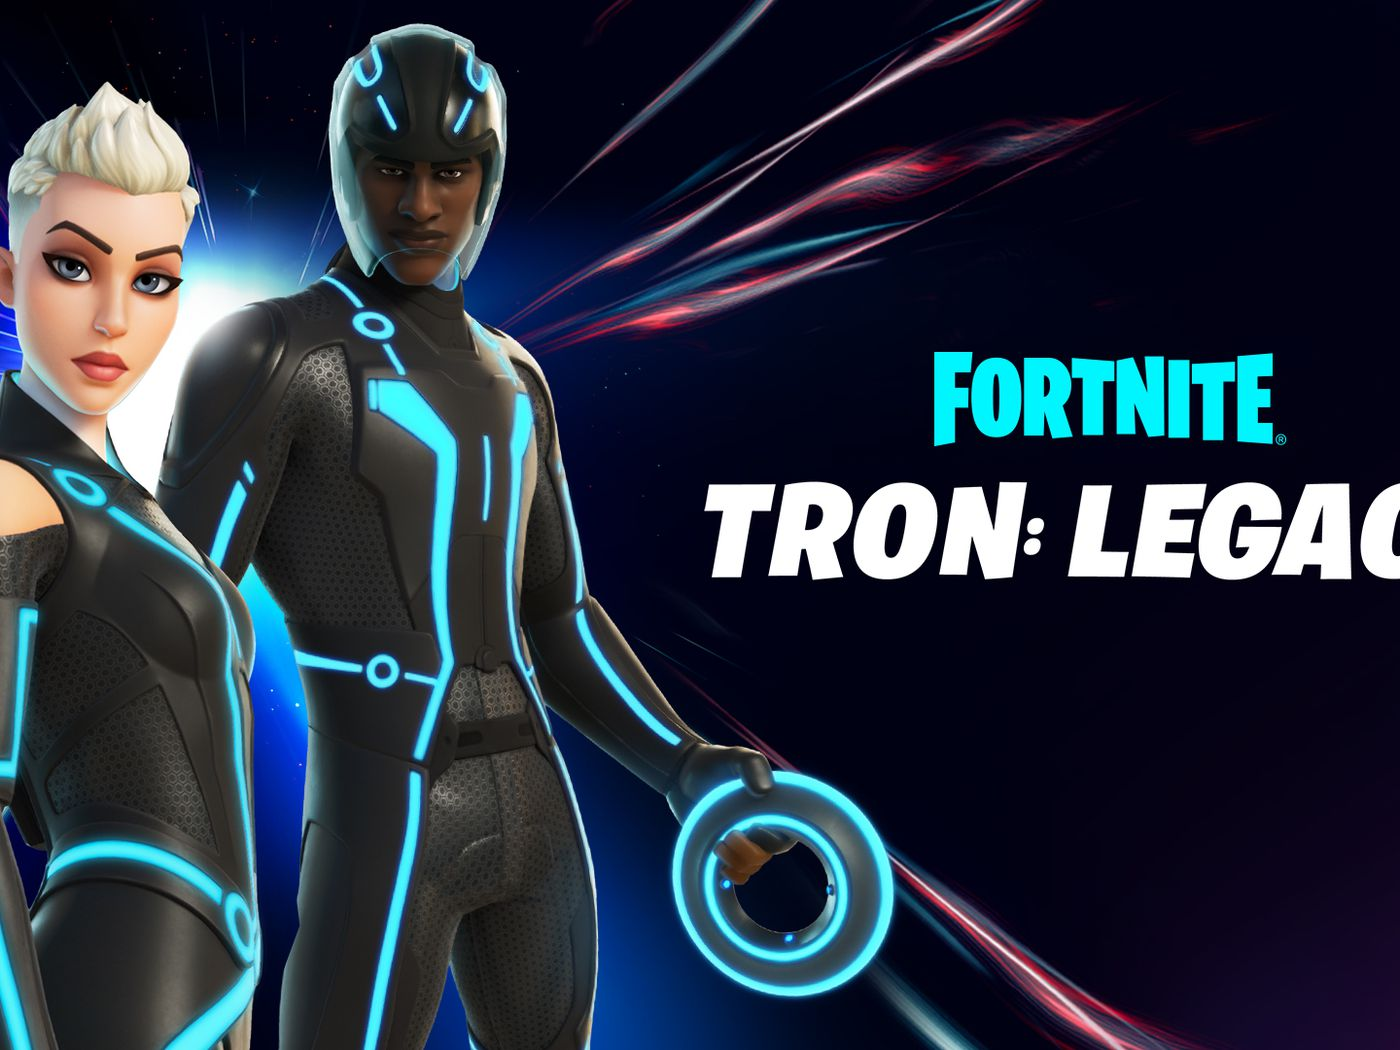 Boy Turns Into A Girl Fortnite Tron Invades Fortnite With Light Cycles And New Skins The Verge